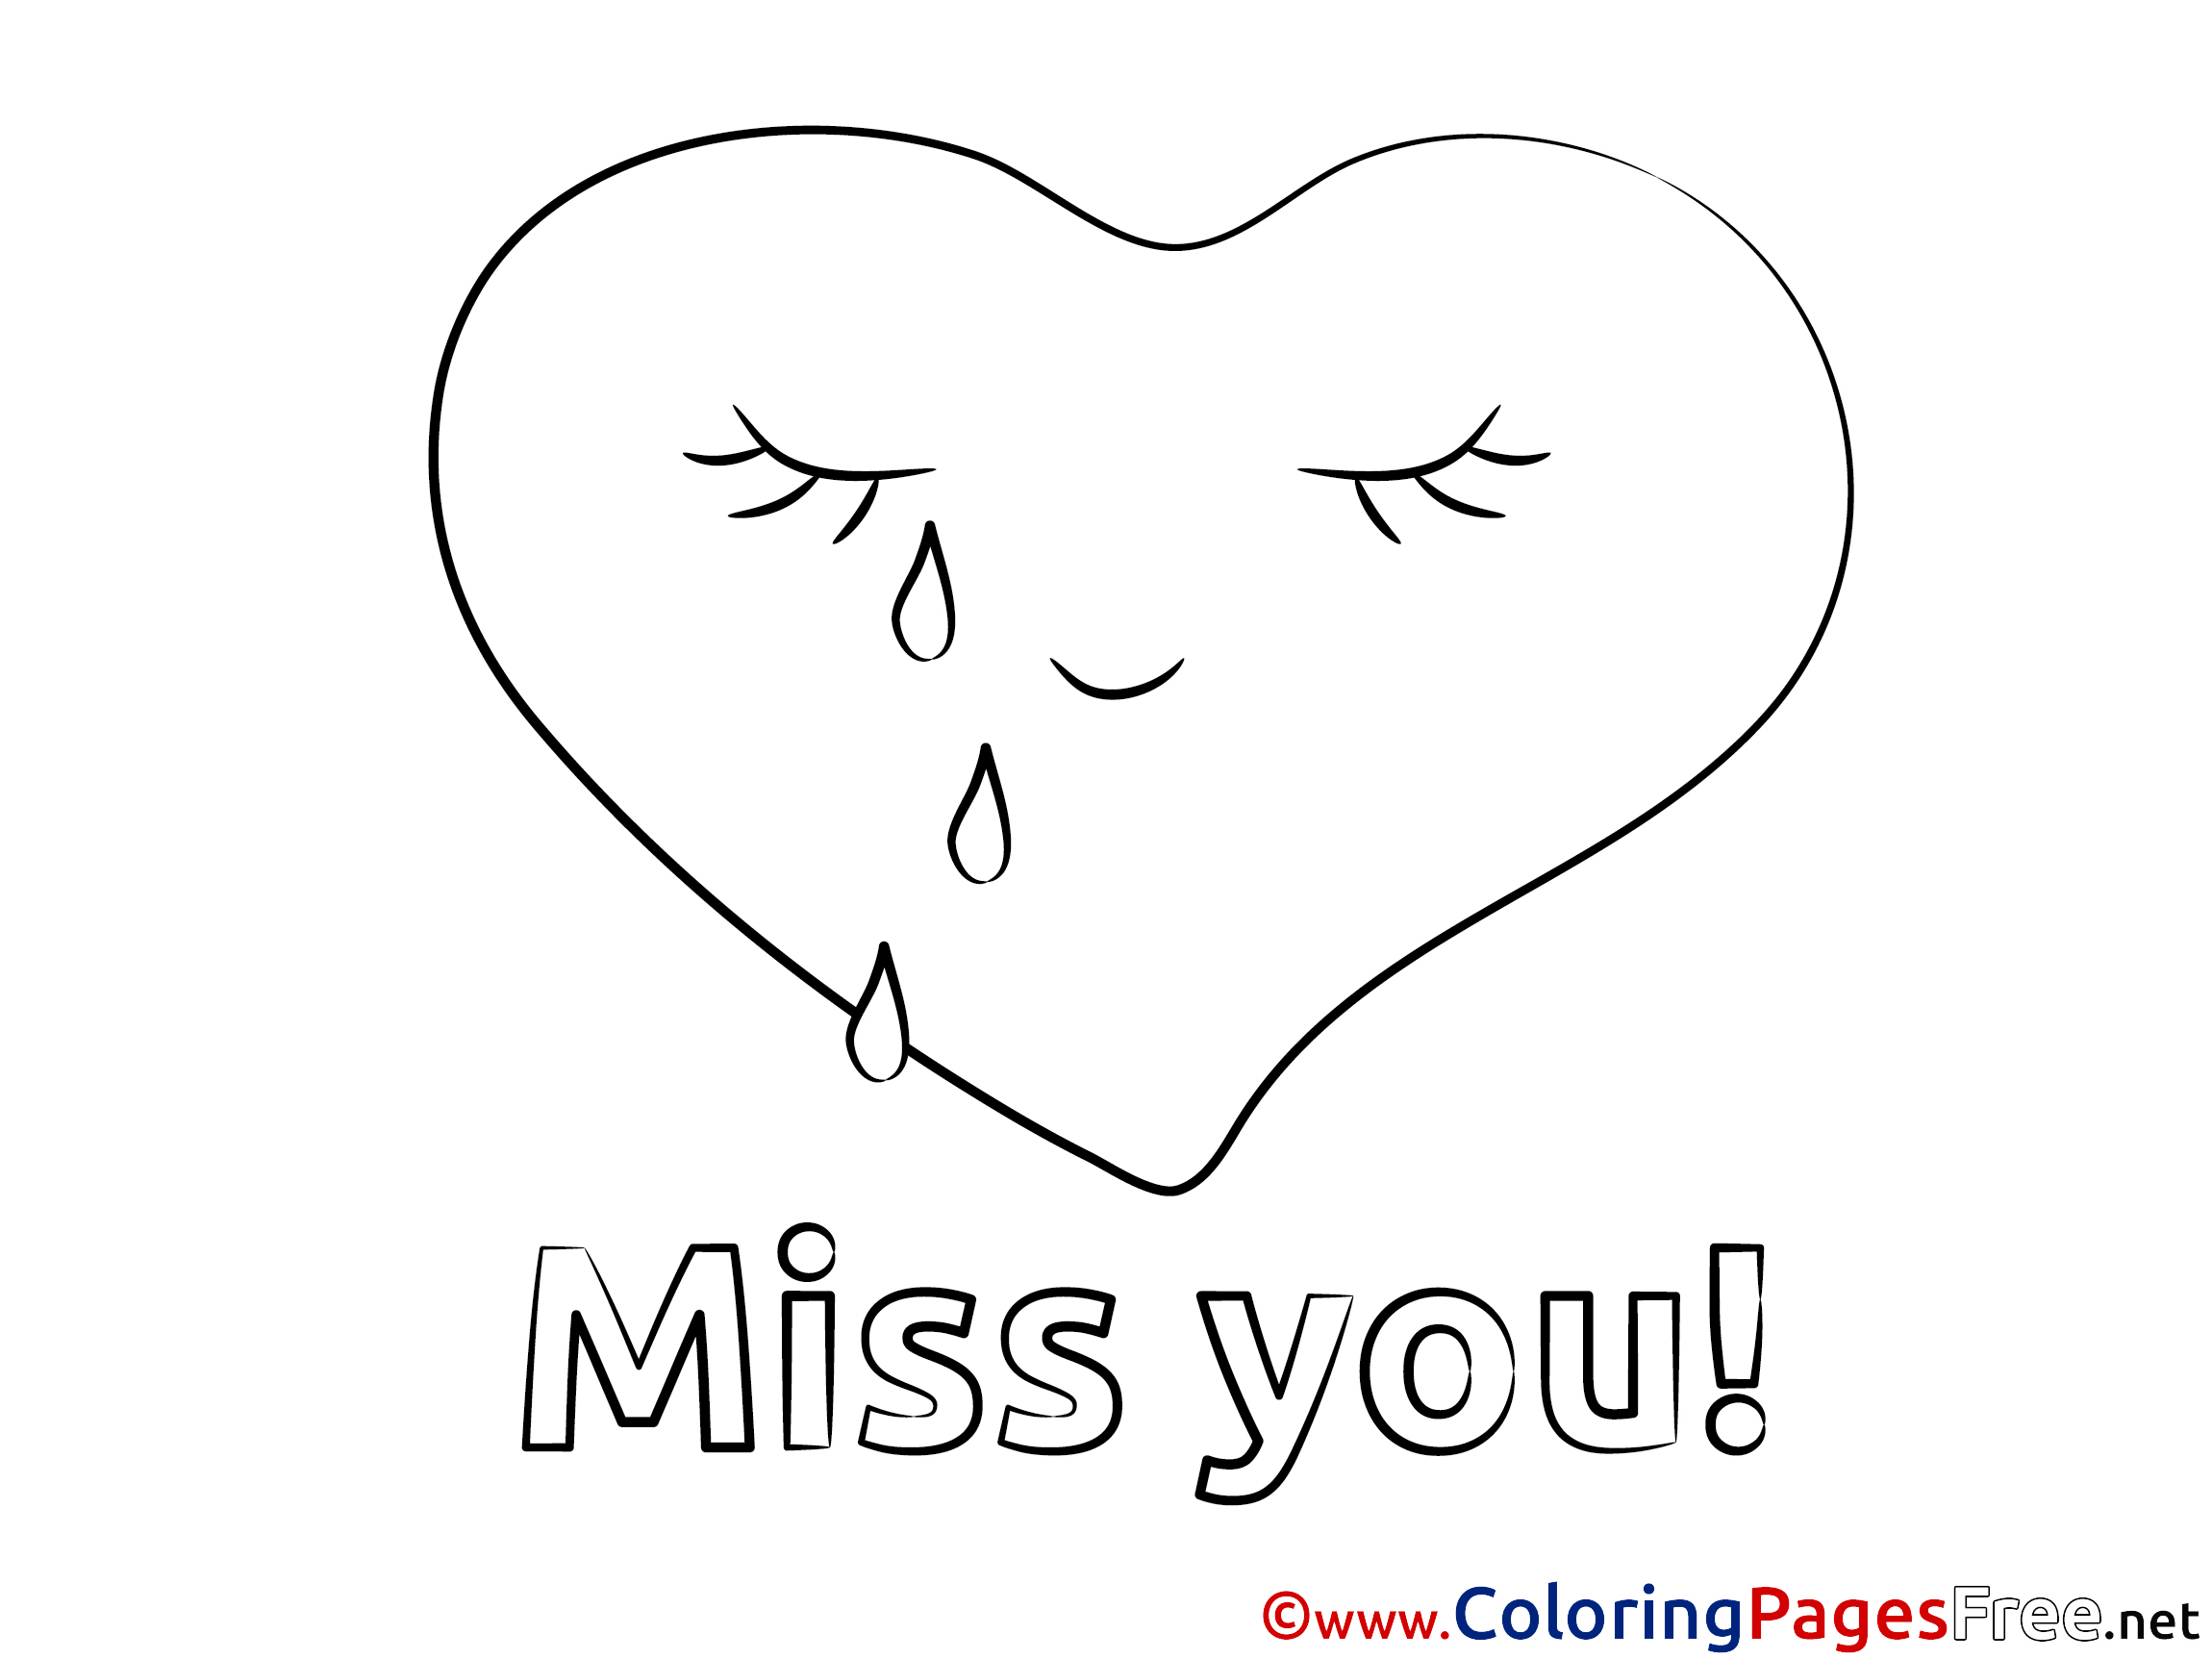 Heart Miss You Coloring Pages Free